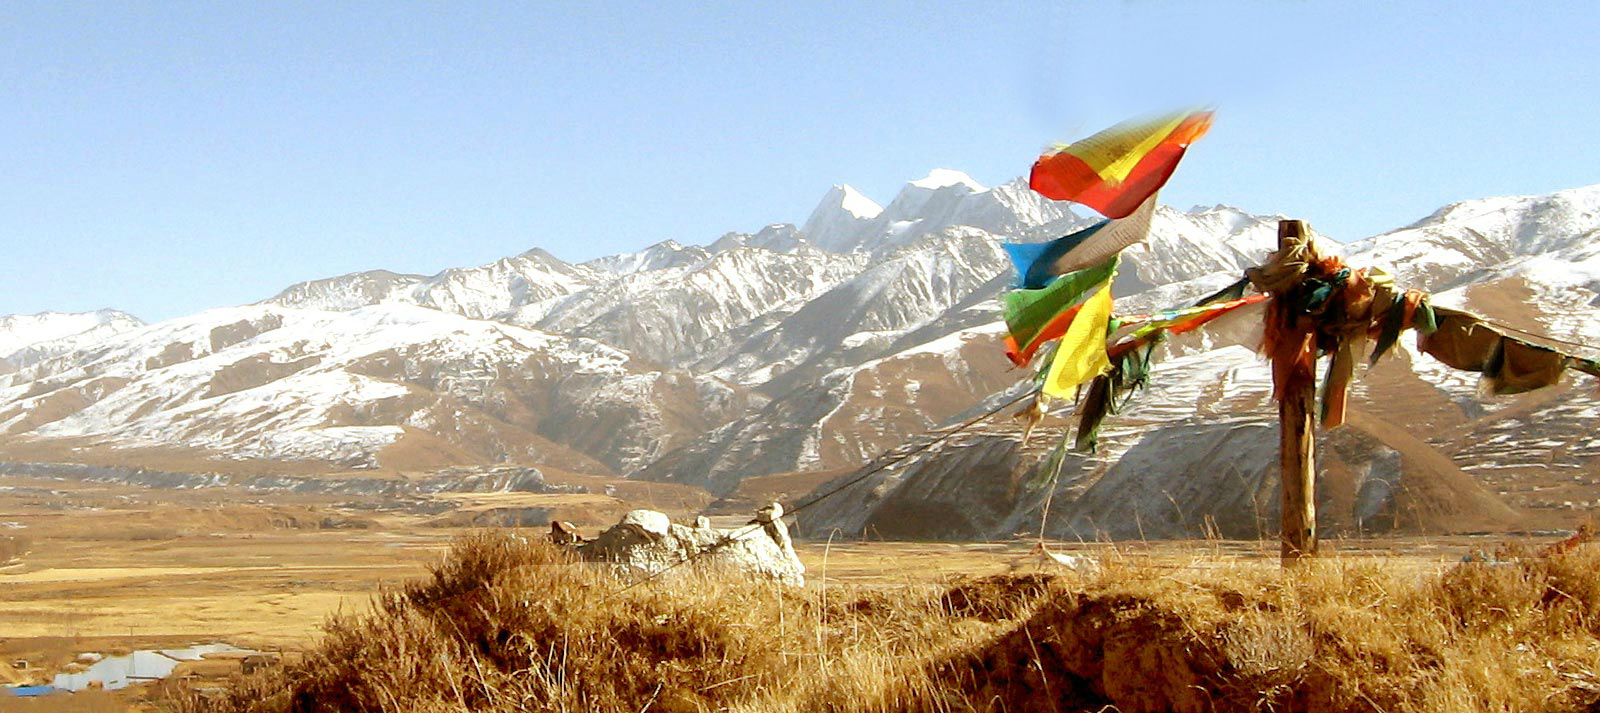 Best Places 10 Best Places to Visit in Tibet Plateau bg site